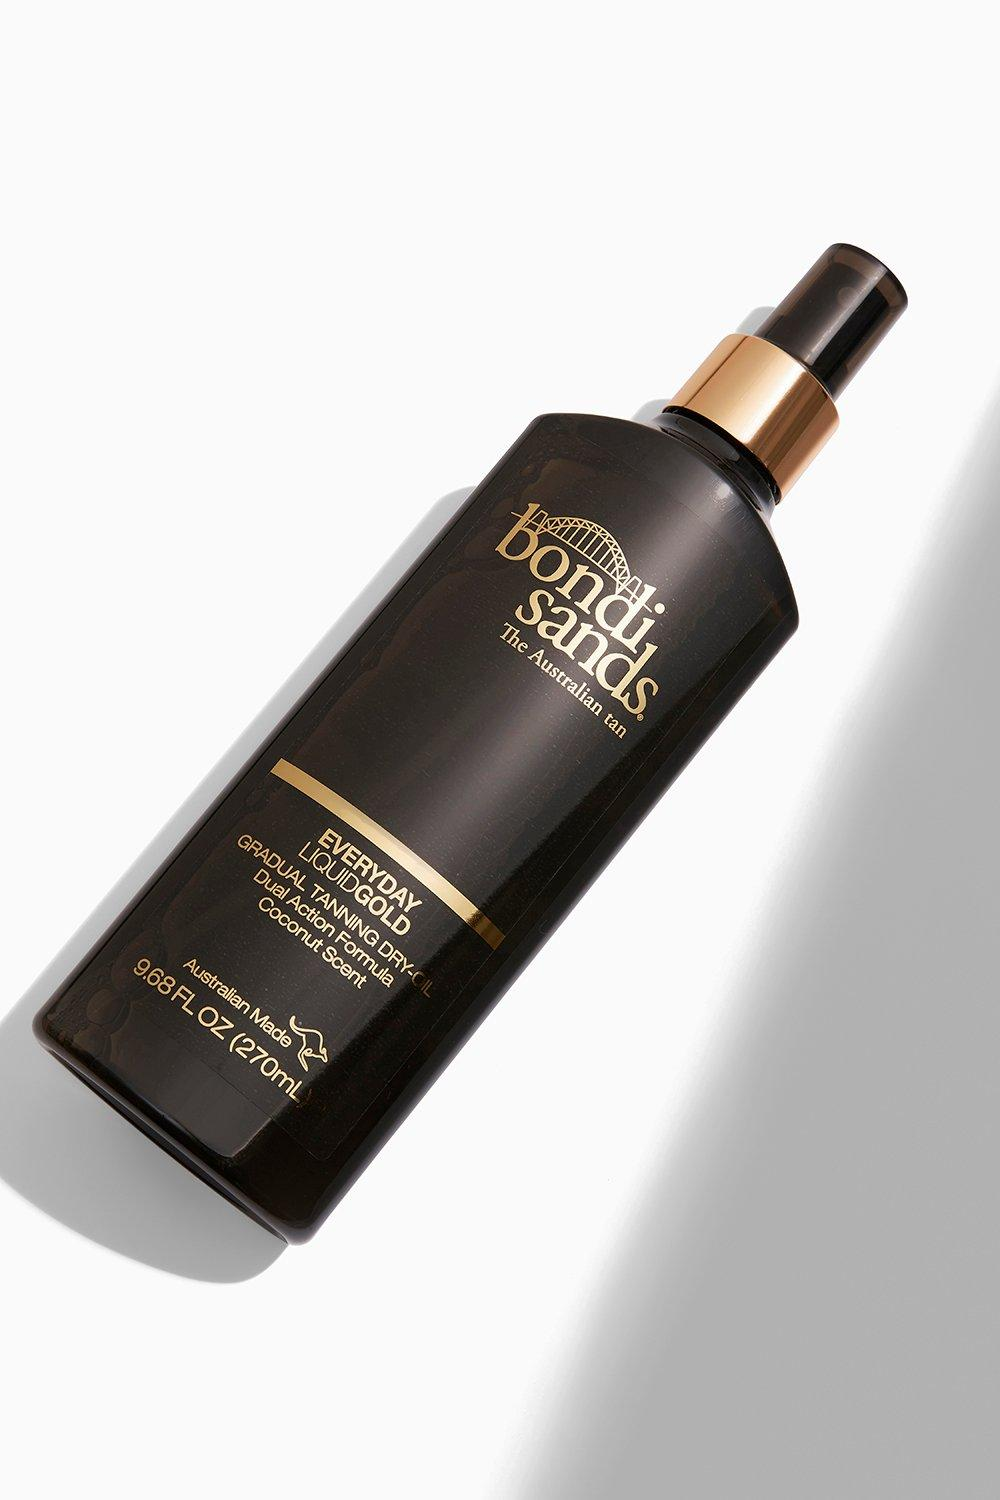 Bondi Sands Womens Bondi Sands Everyday Gradual Liquid Gold Tanning Oil - Brown - One Size, Brown